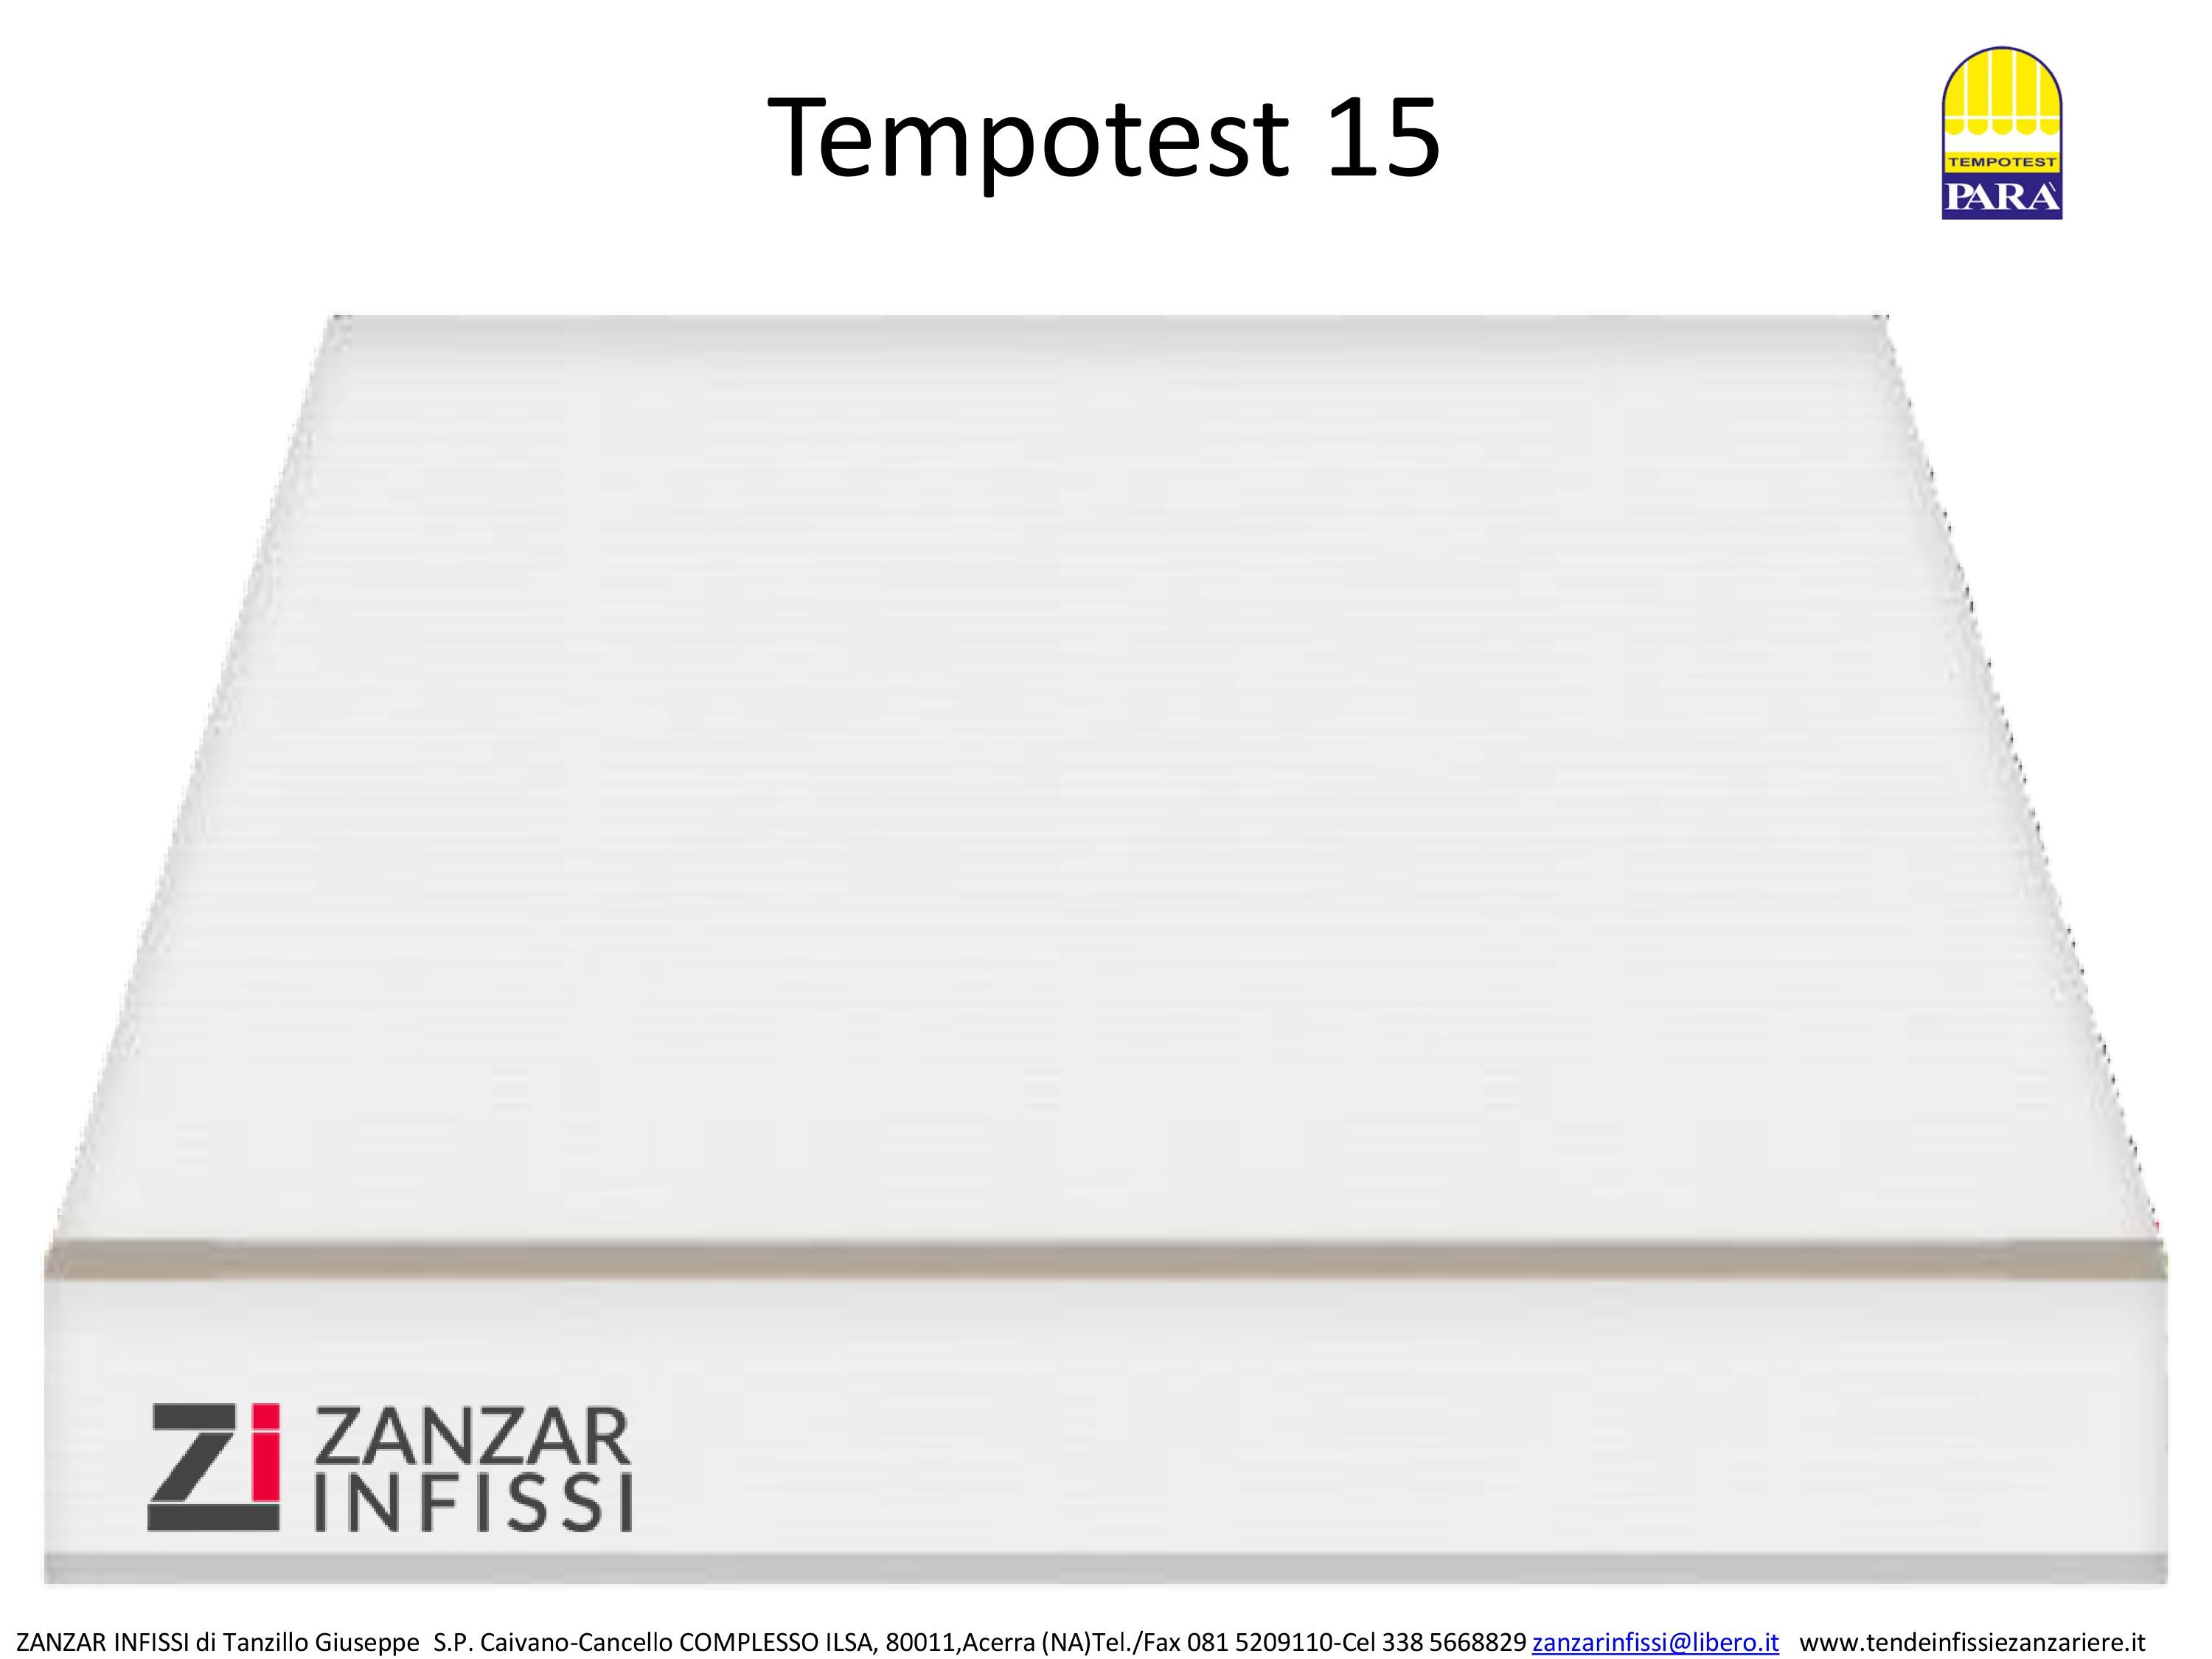 Tempotest 15